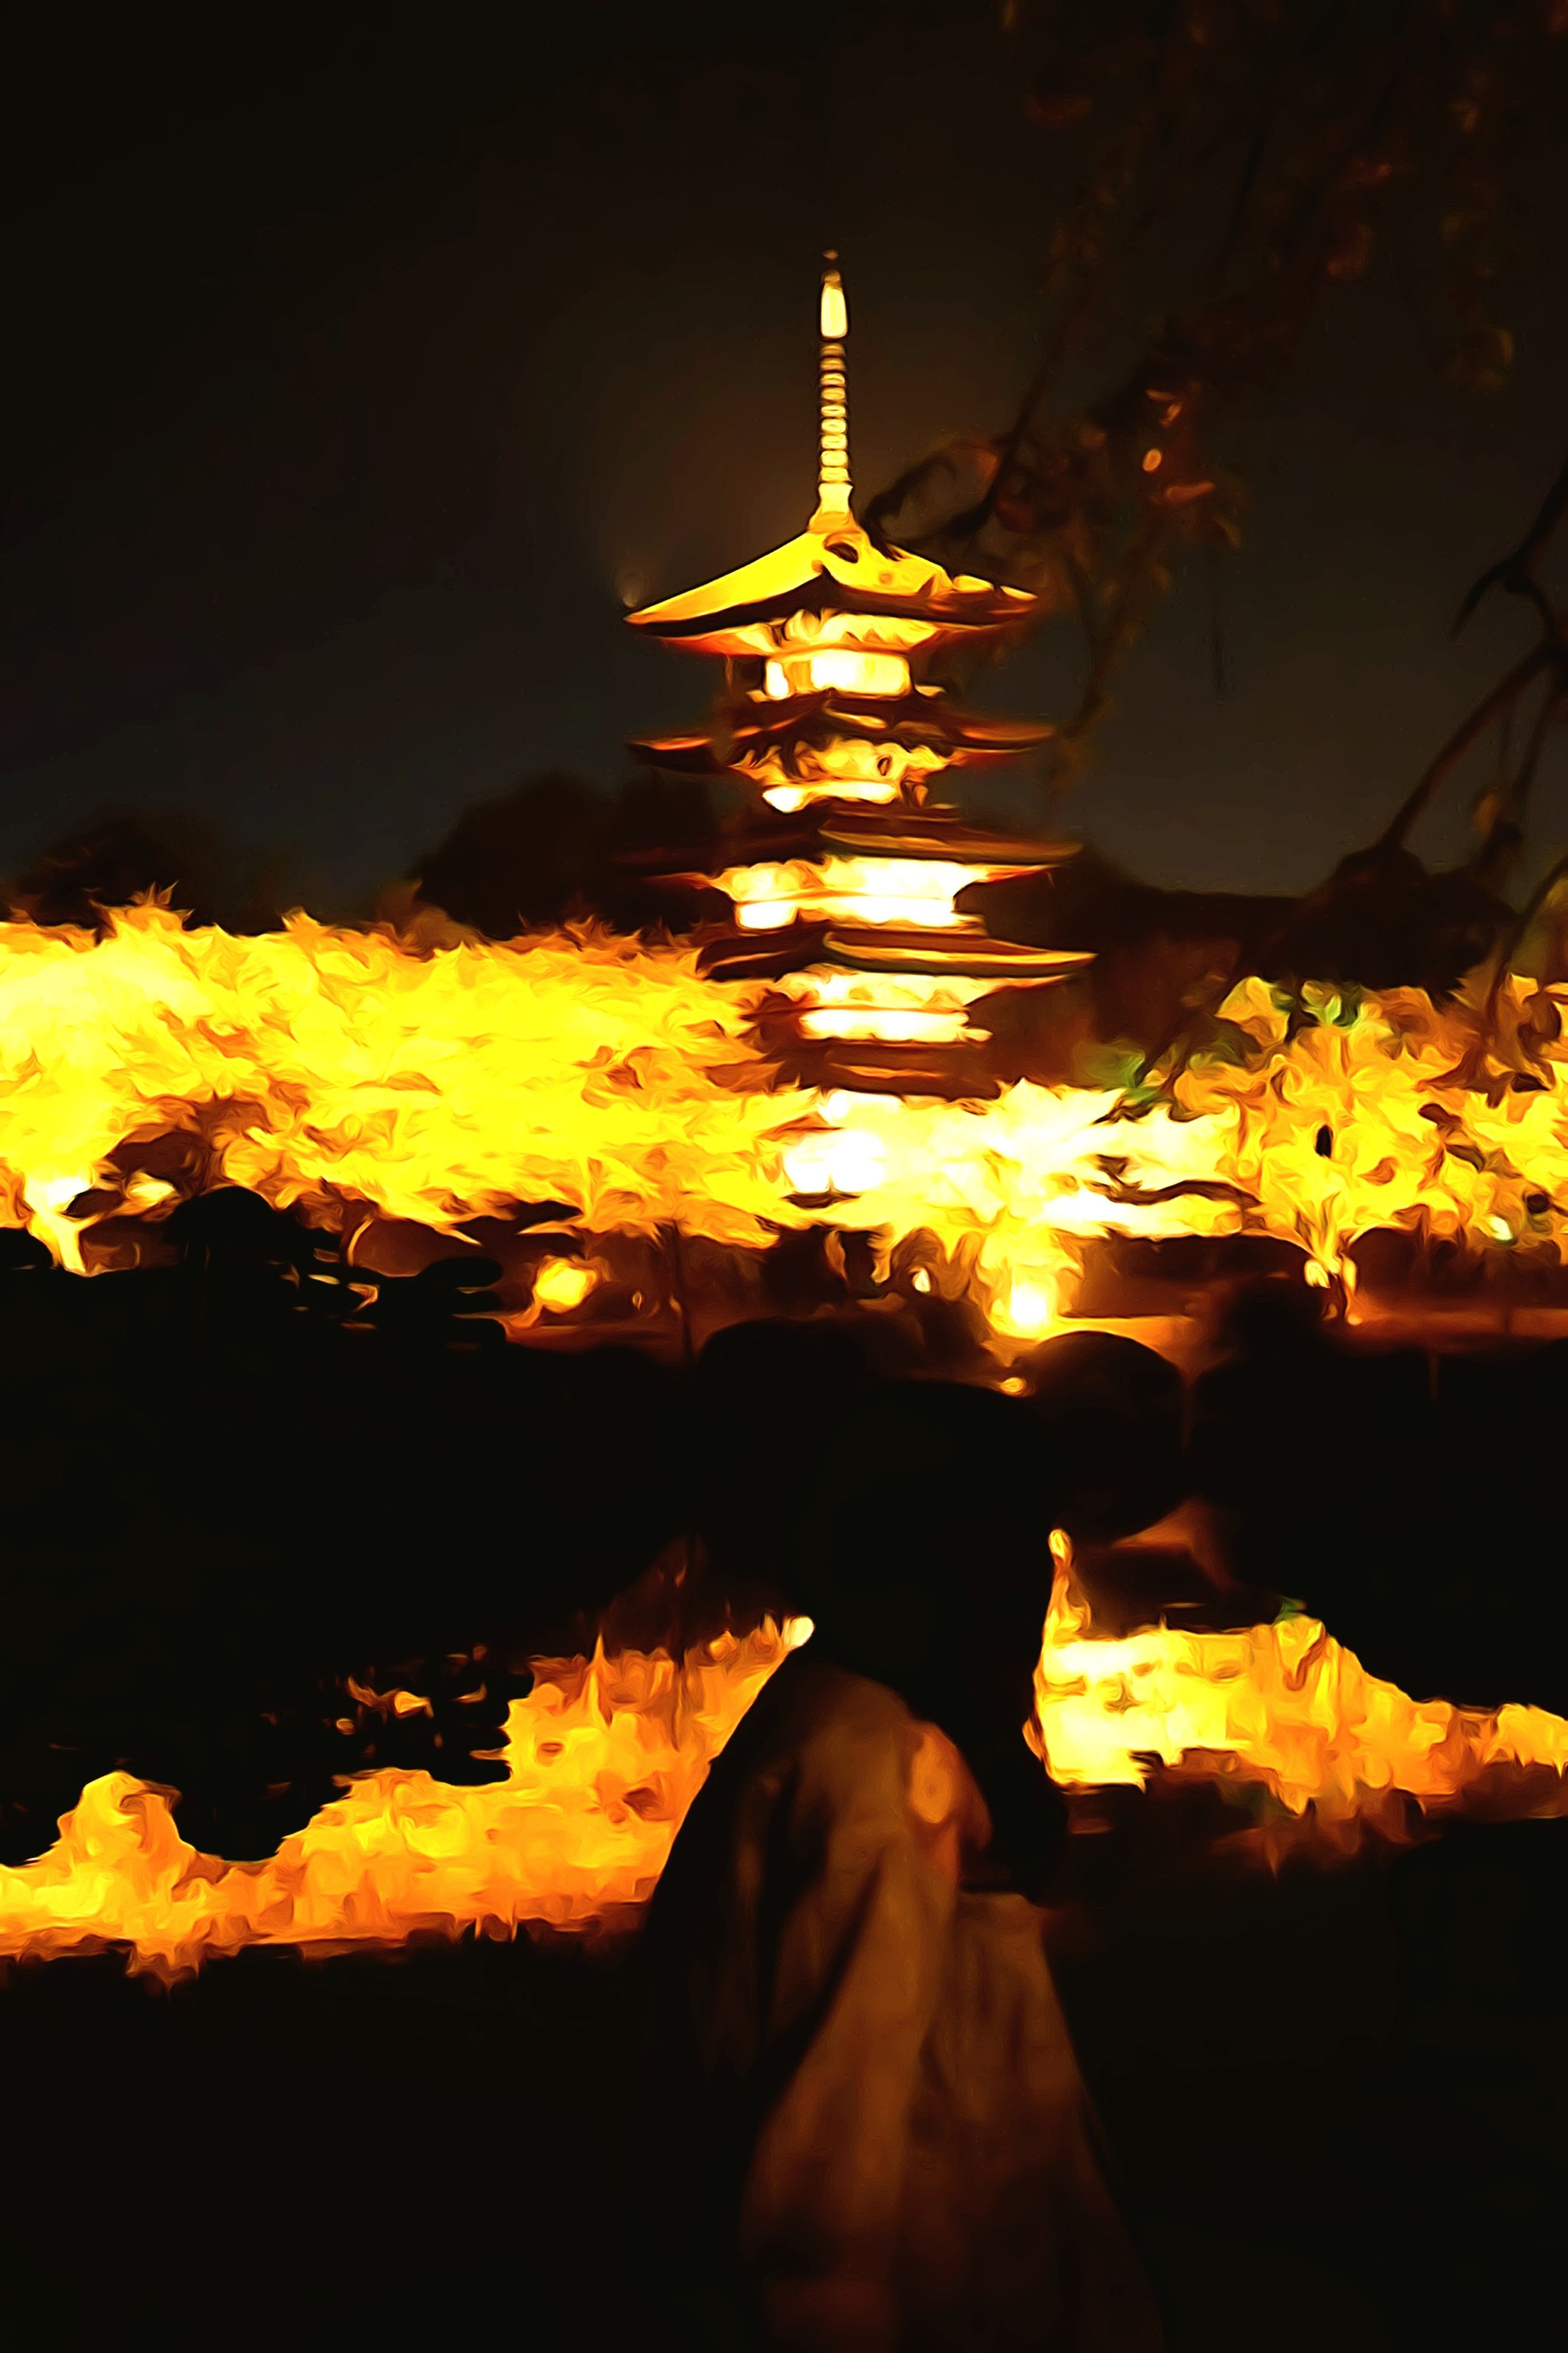 illuminated, night, place of worship, religion, spirituality, famous place, temple - building, tourism, travel destinations, burning, travel, international landmark, fire - natural phenomenon, flame, built structure, cultures, building exterior, architecture, temple